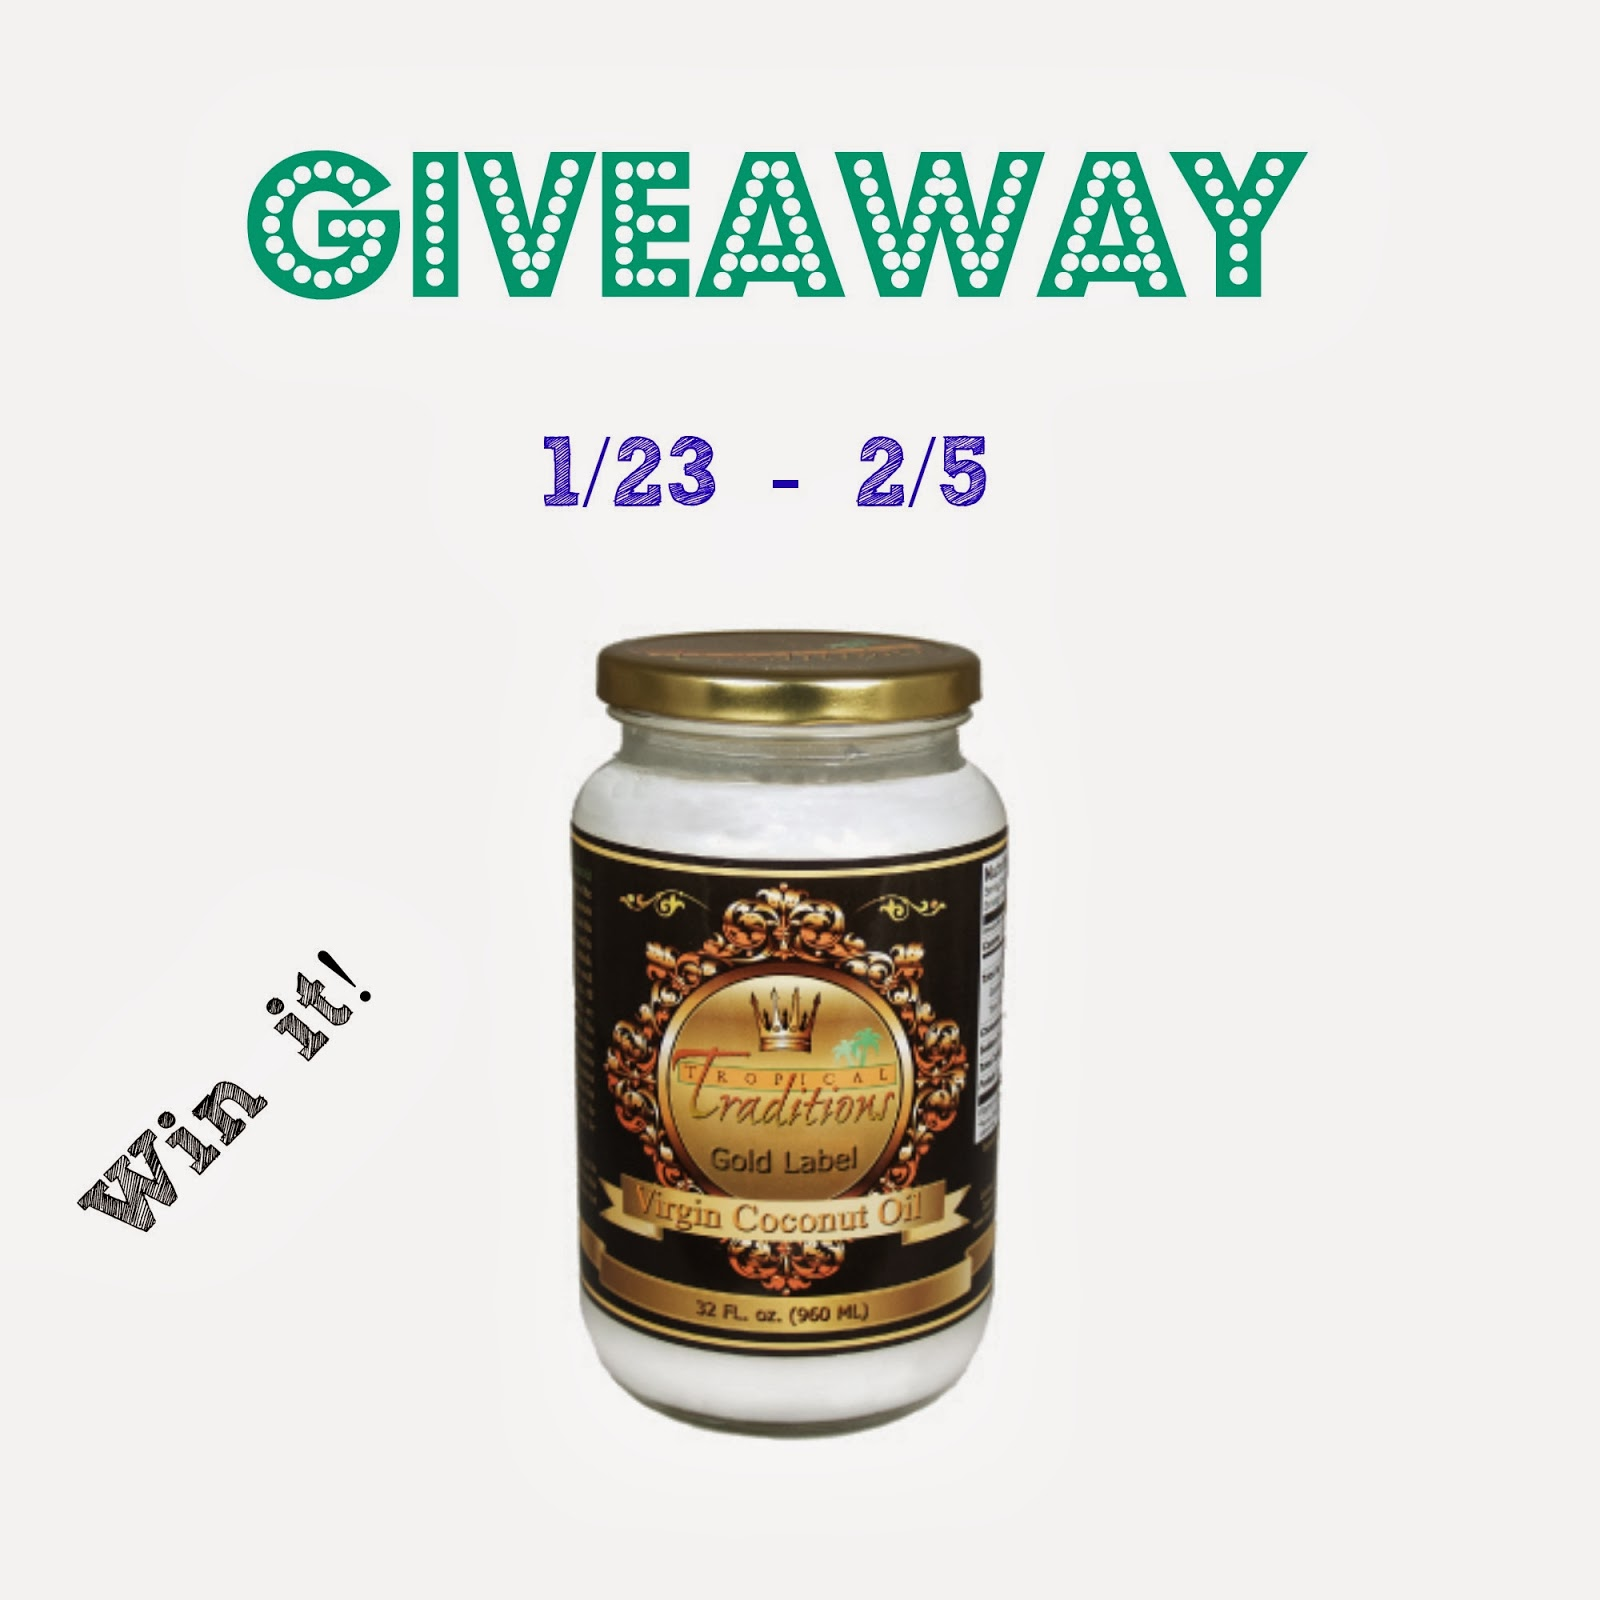 Enter the Gold Label Virgin Coconut Oil Giveaway. Ends 2/5 US/CAN